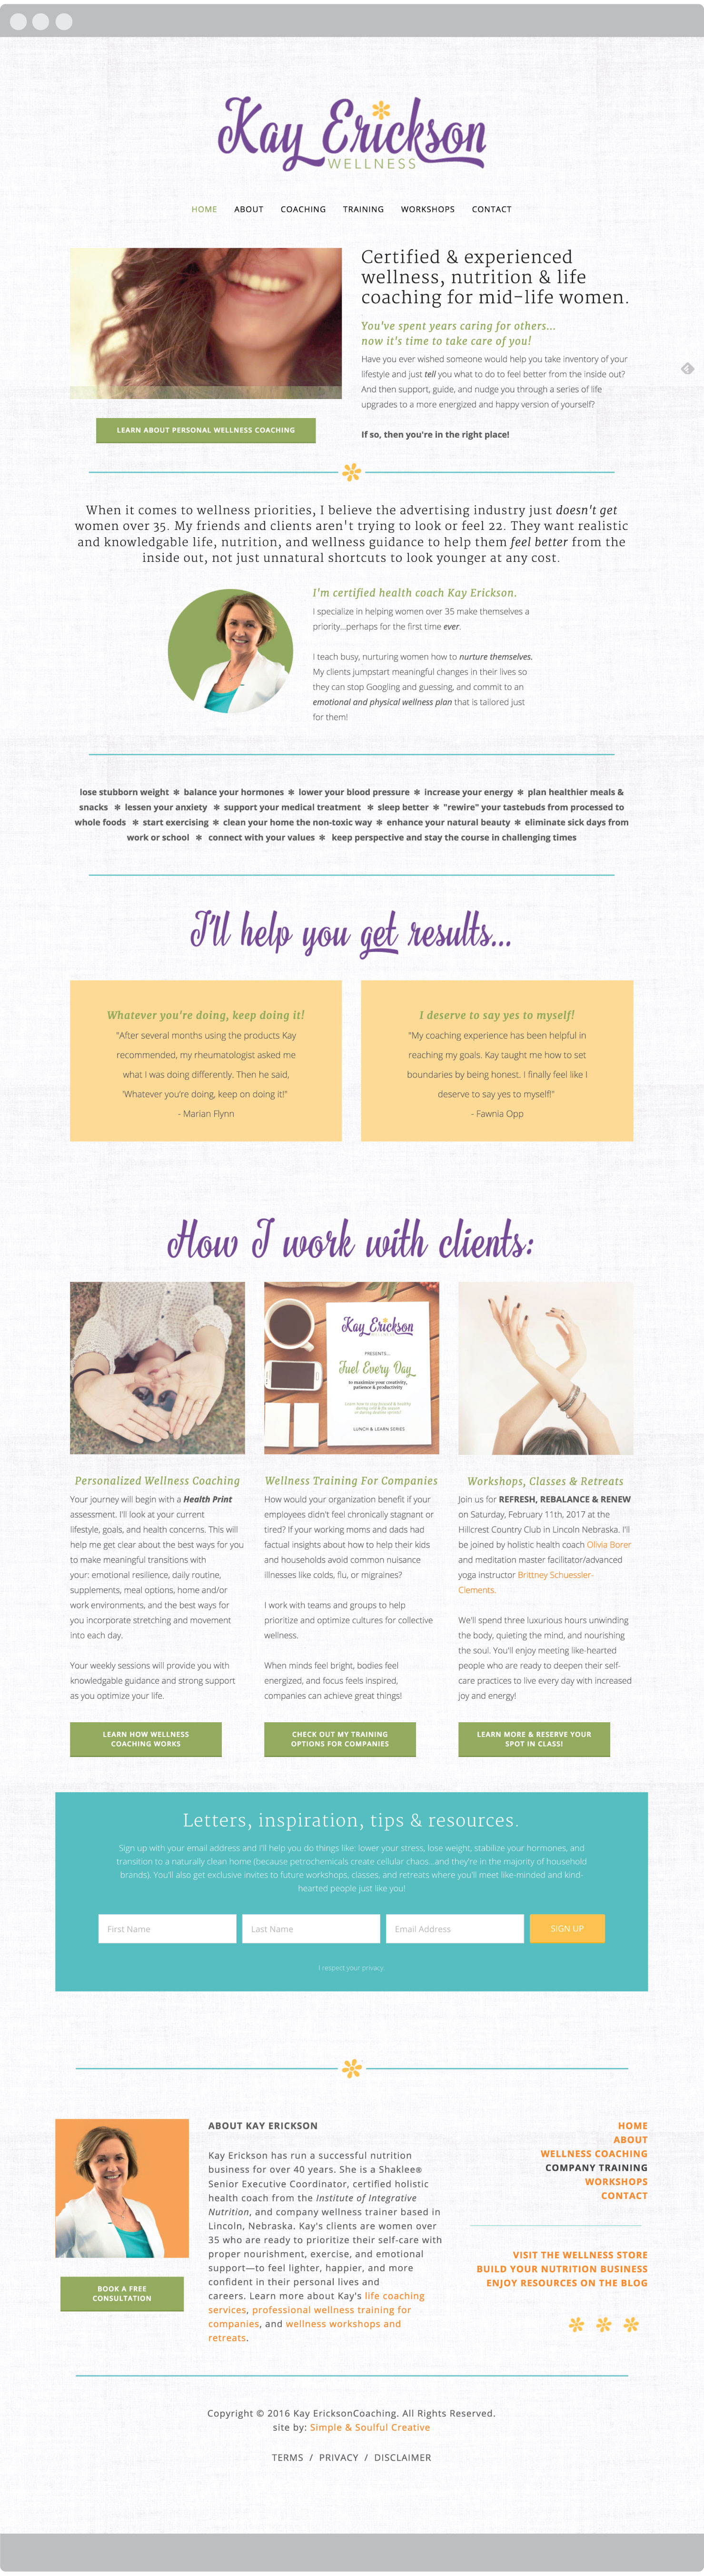 Squarespace website homepage design for certified wellness coach, Kay Erickson. We started with the Montauk template which a great fit for clients who don't have much photography. We added a linen page background to give her site a warm, welcoming feel. By Simple & Soulful Creative.